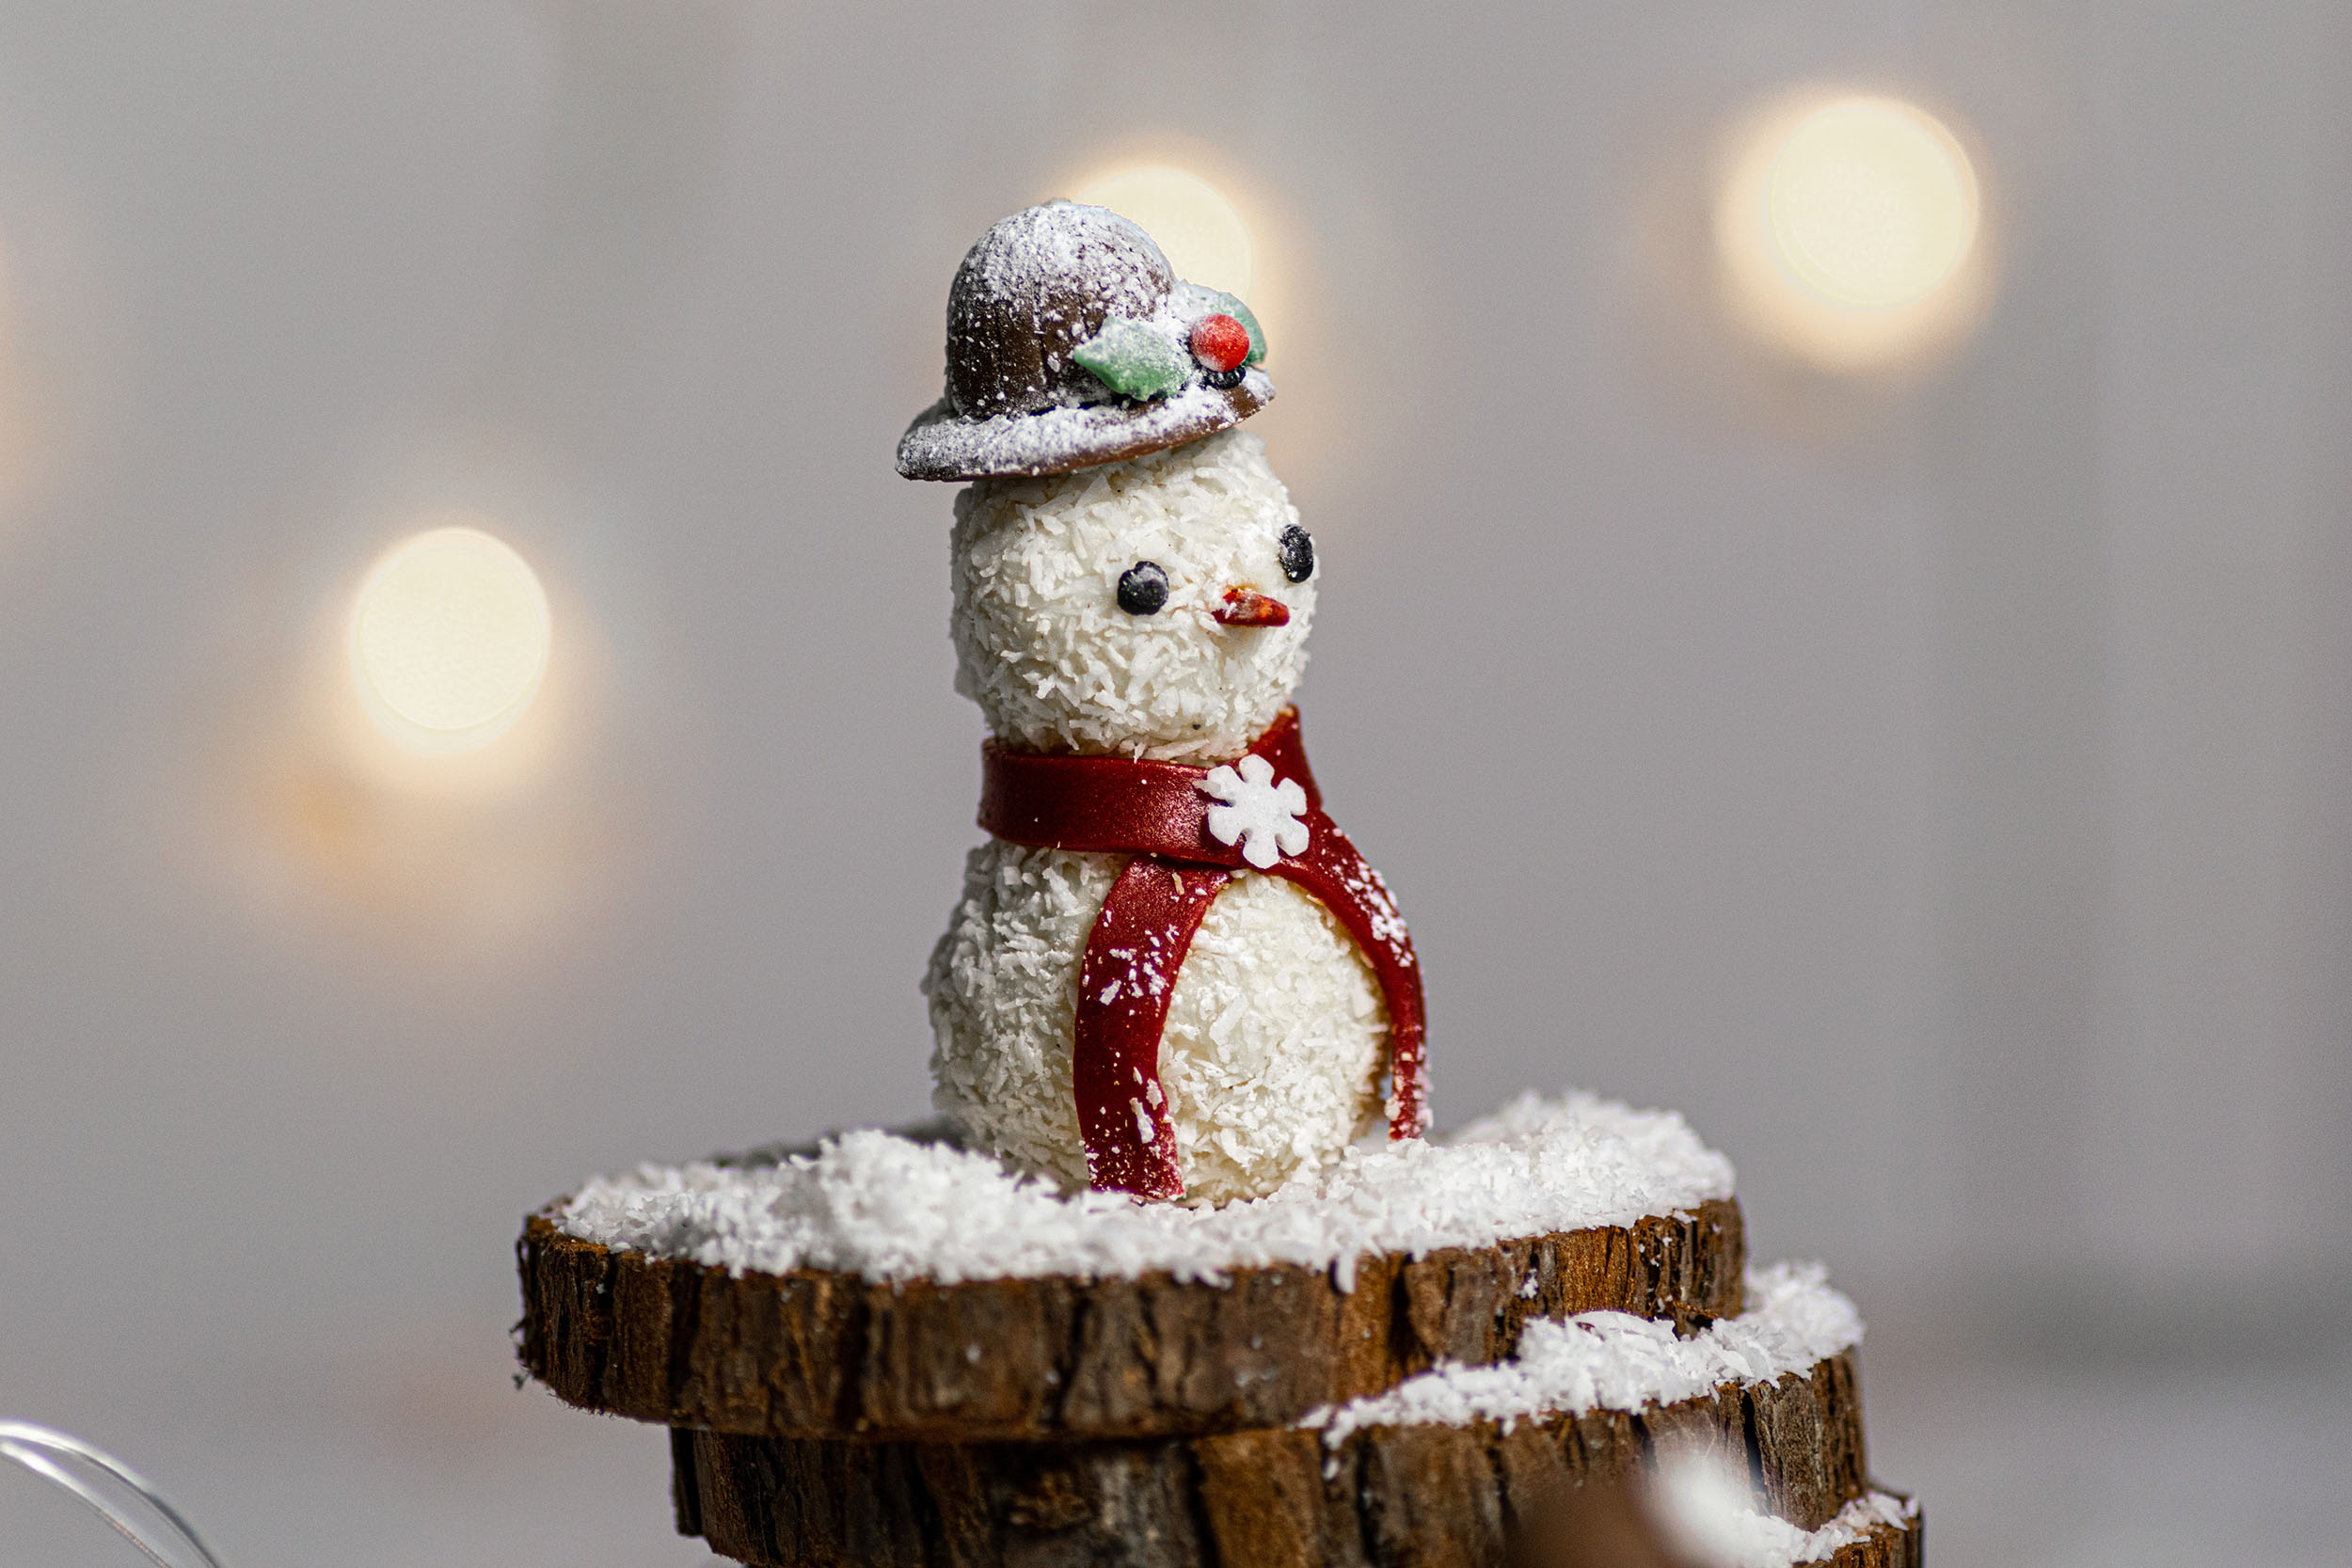 Snowman white chocolate truffle on wooden logs